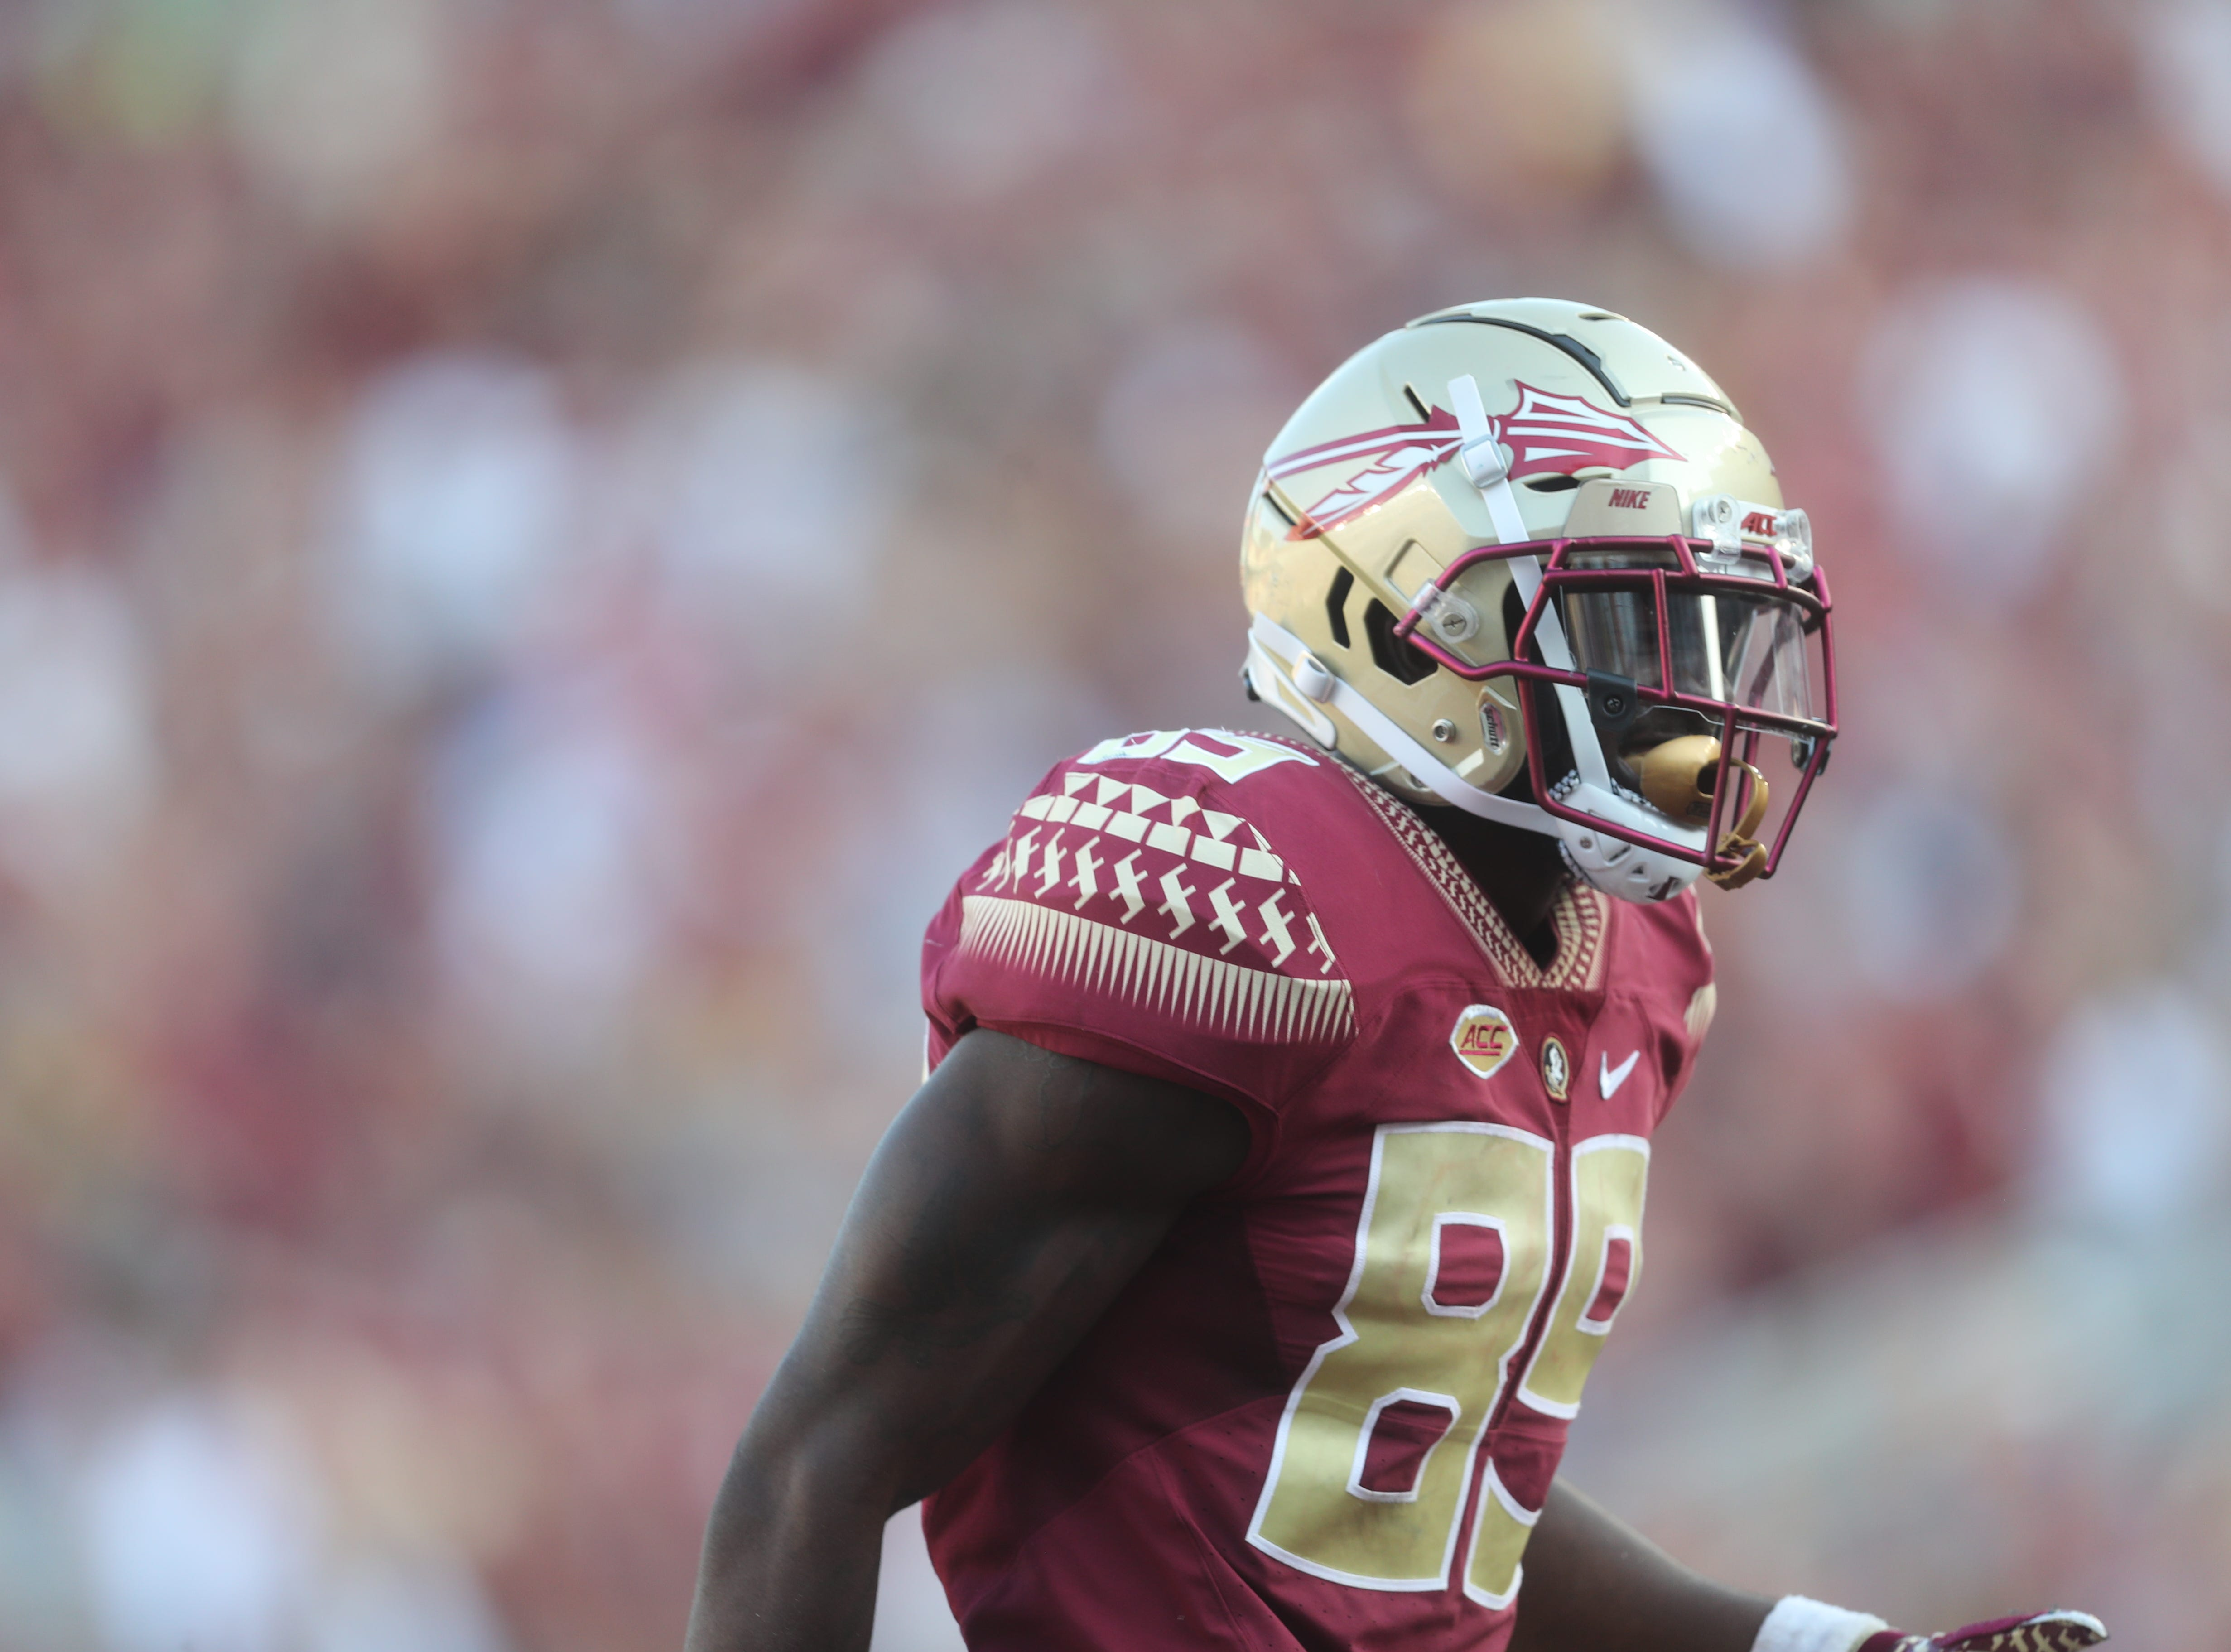 Florida State Seminoles wide receiver Keith Gavin (89) celebrates during a game between the Florida State University Seminoles and the Northern Illinois University Huskies at Doak S. Campbell Stadium in Tallahassee, Fla. Saturday, September 22, 2018.